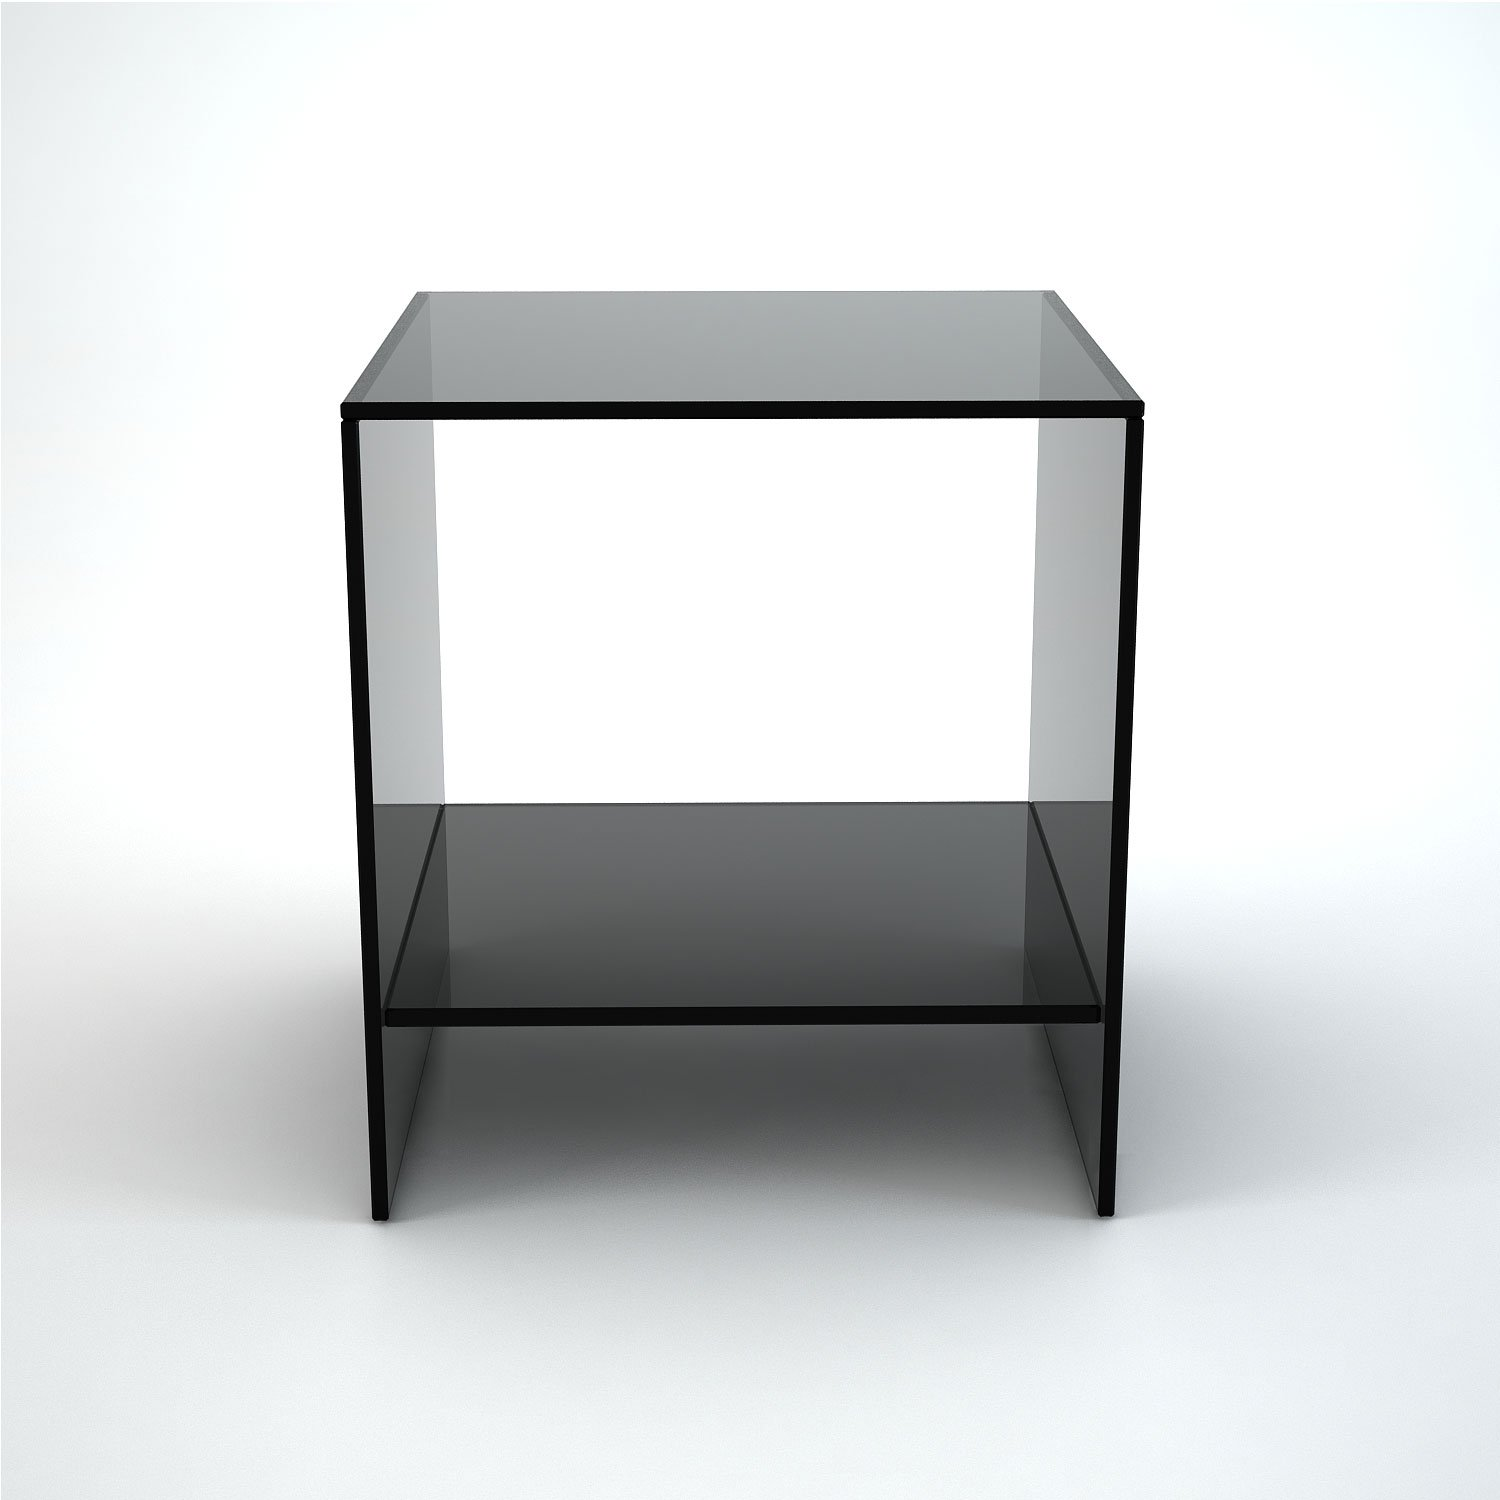 Judd Smoked Glass Side Table With Low Shelf Klarity Glass Furniture